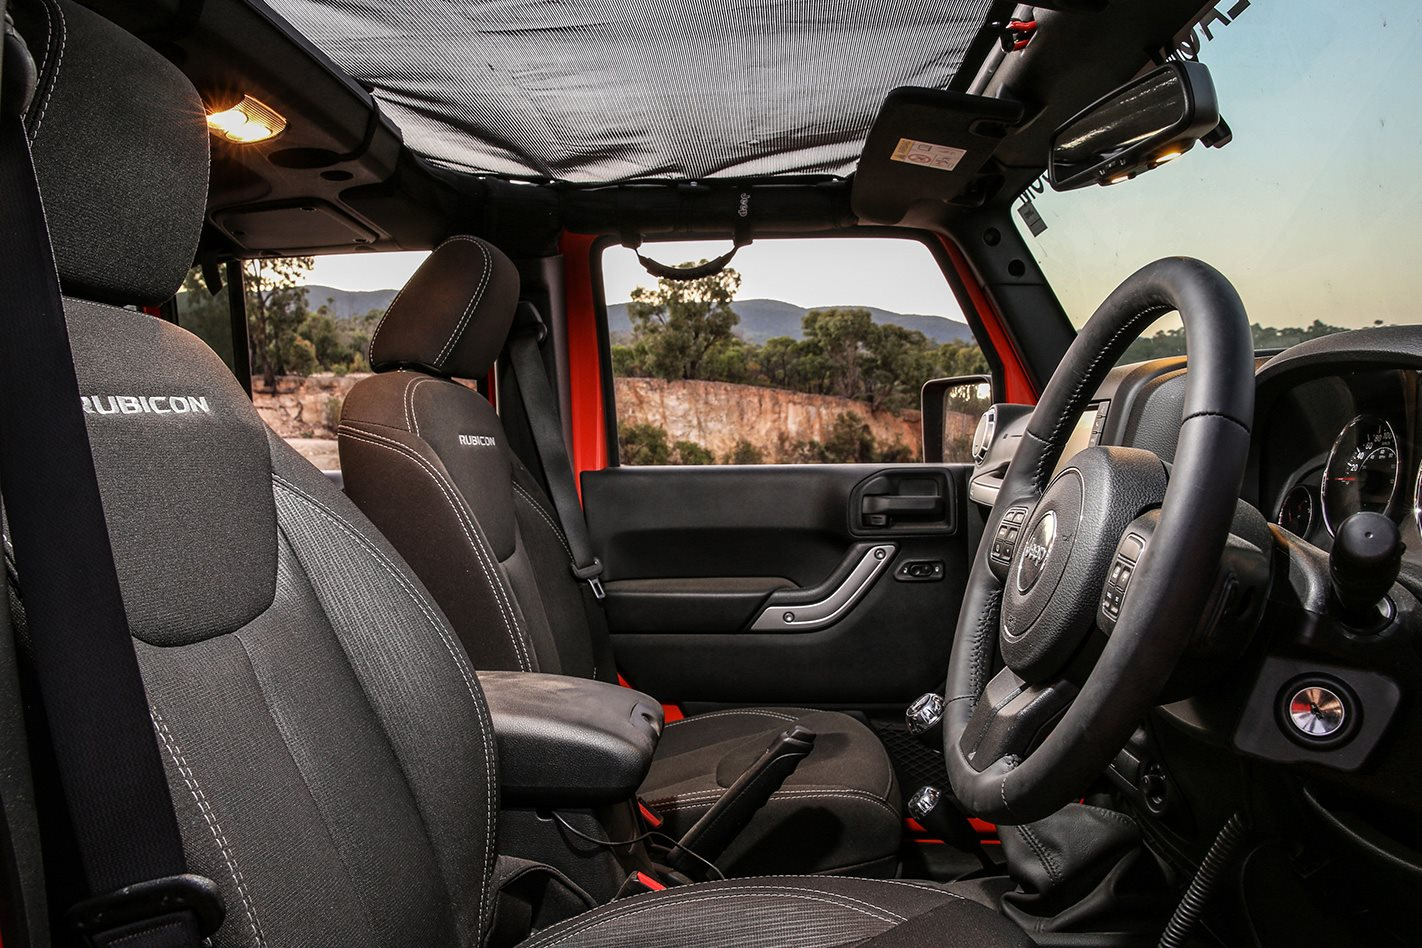 jeep wrangler 2015 interior. rubicon jku interior jeep wrangler 2015